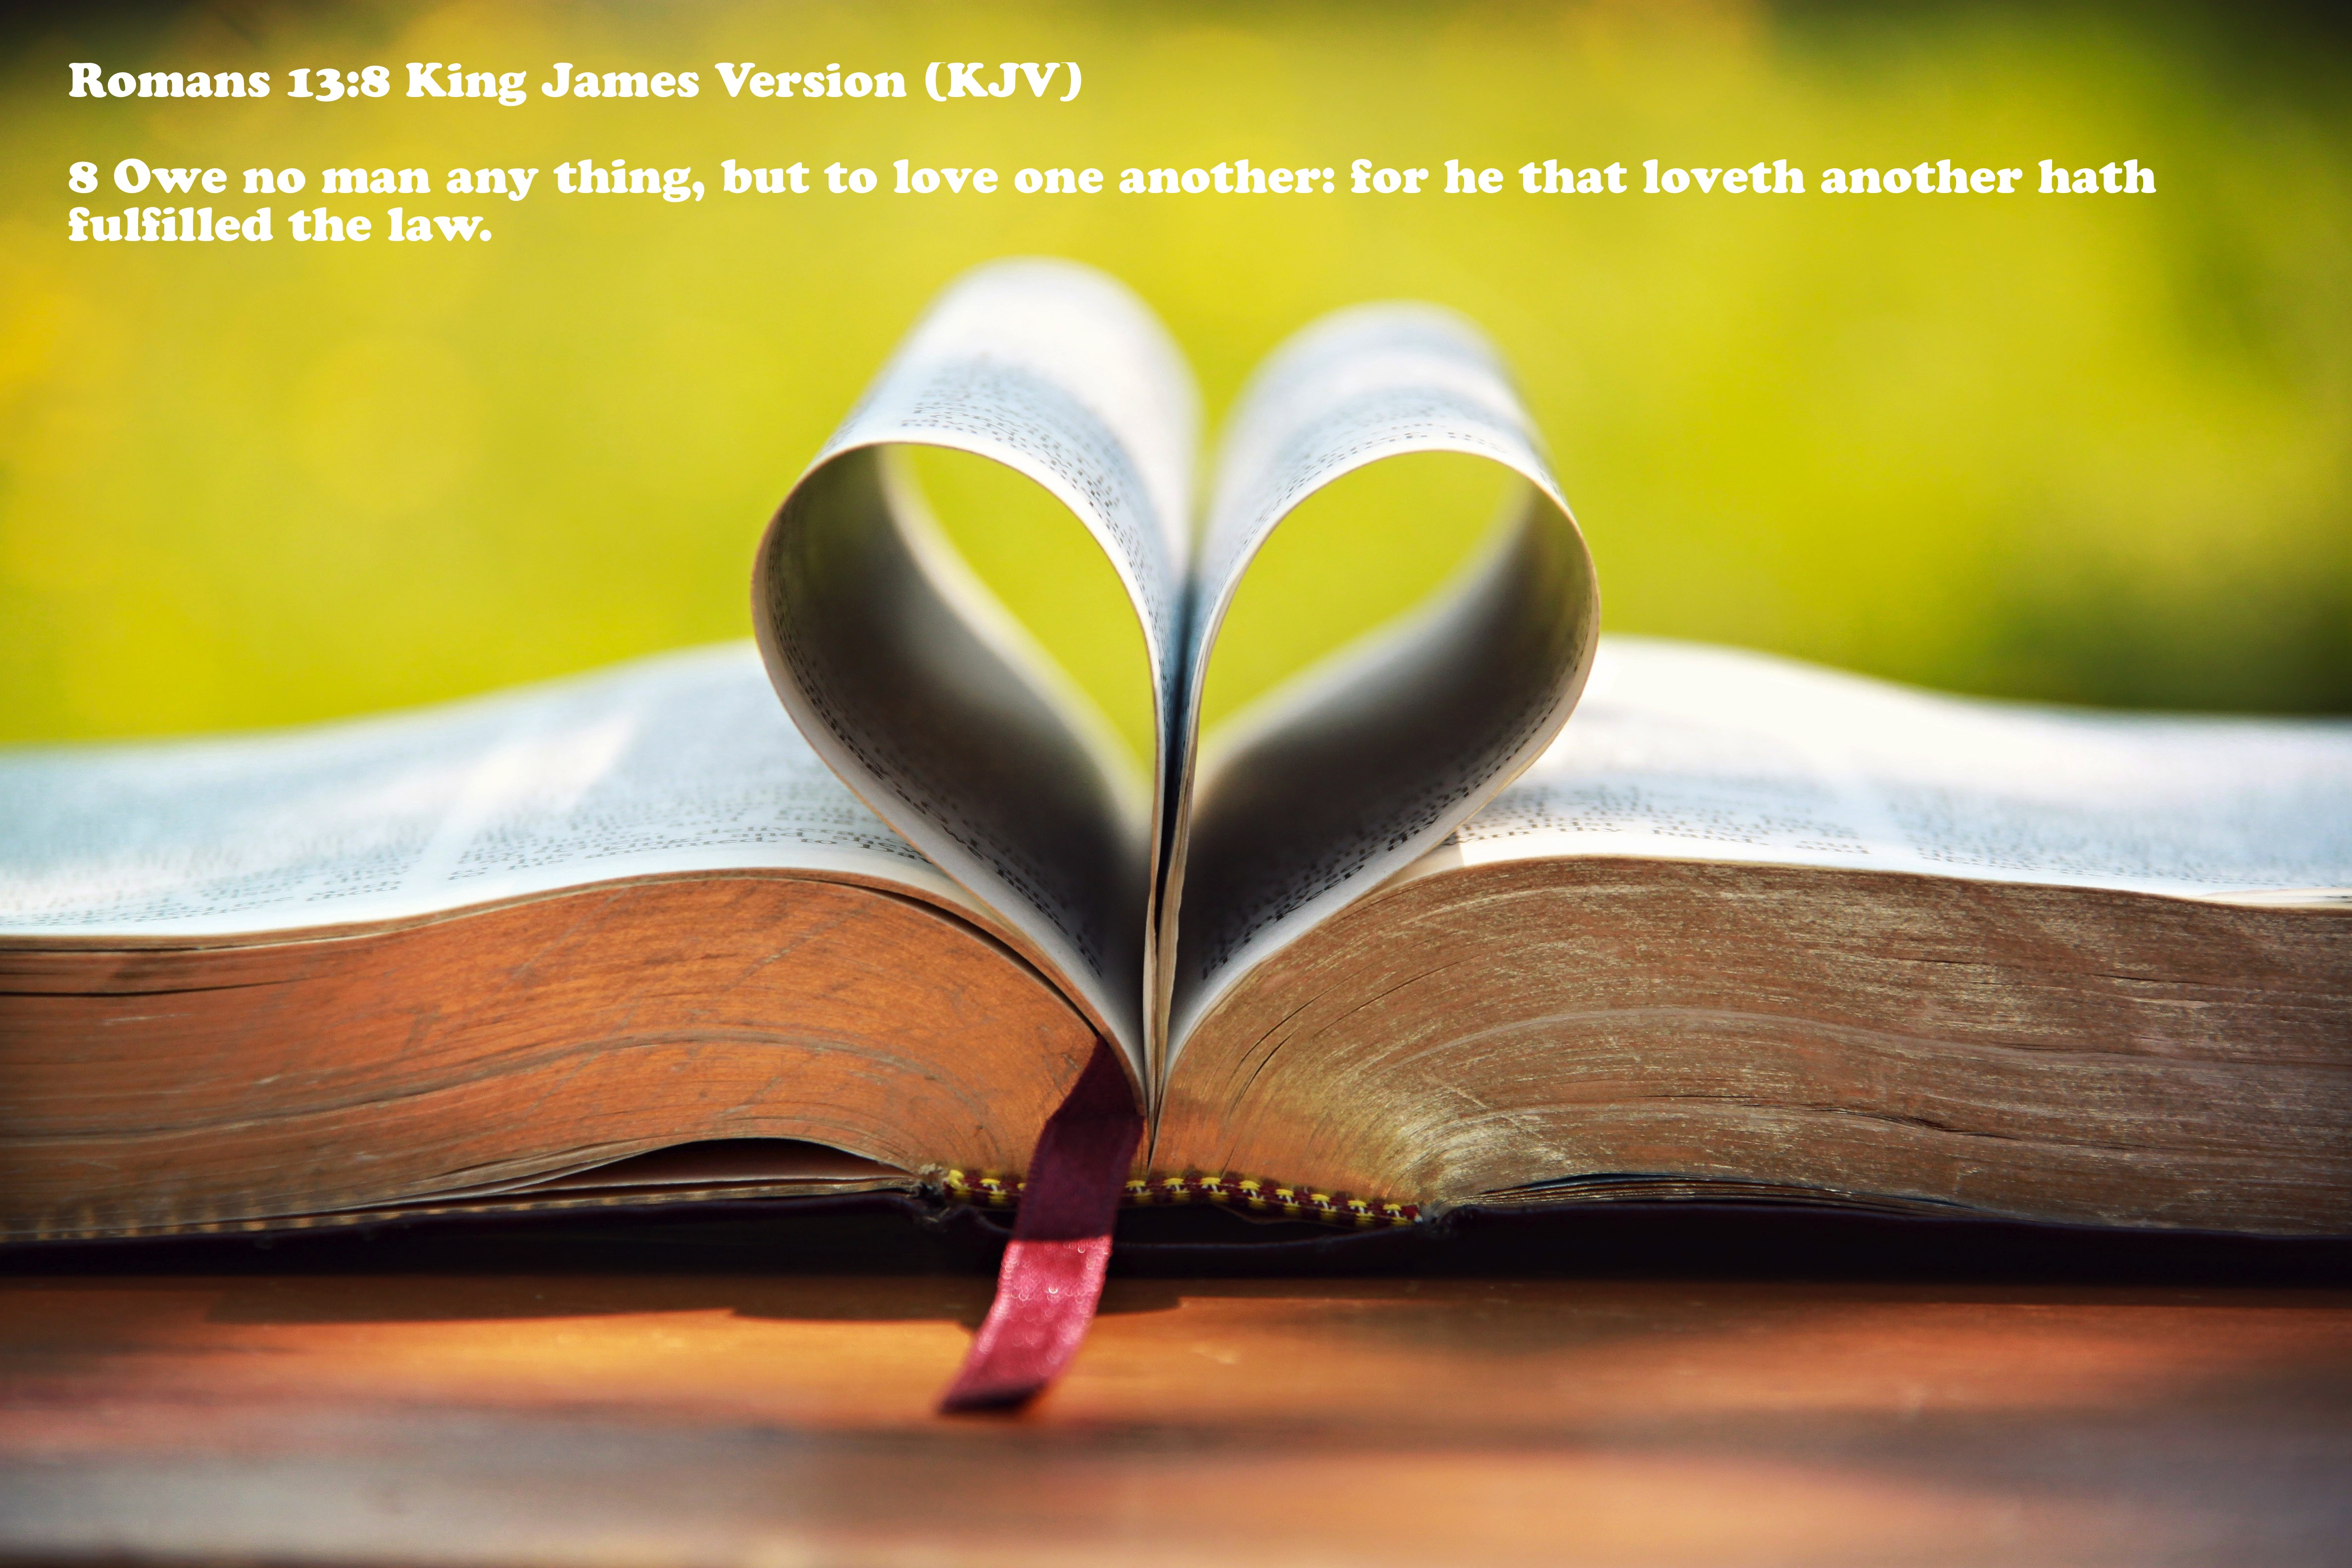 Love is   the Fulfillment of God's Laws - Lines & Precepts